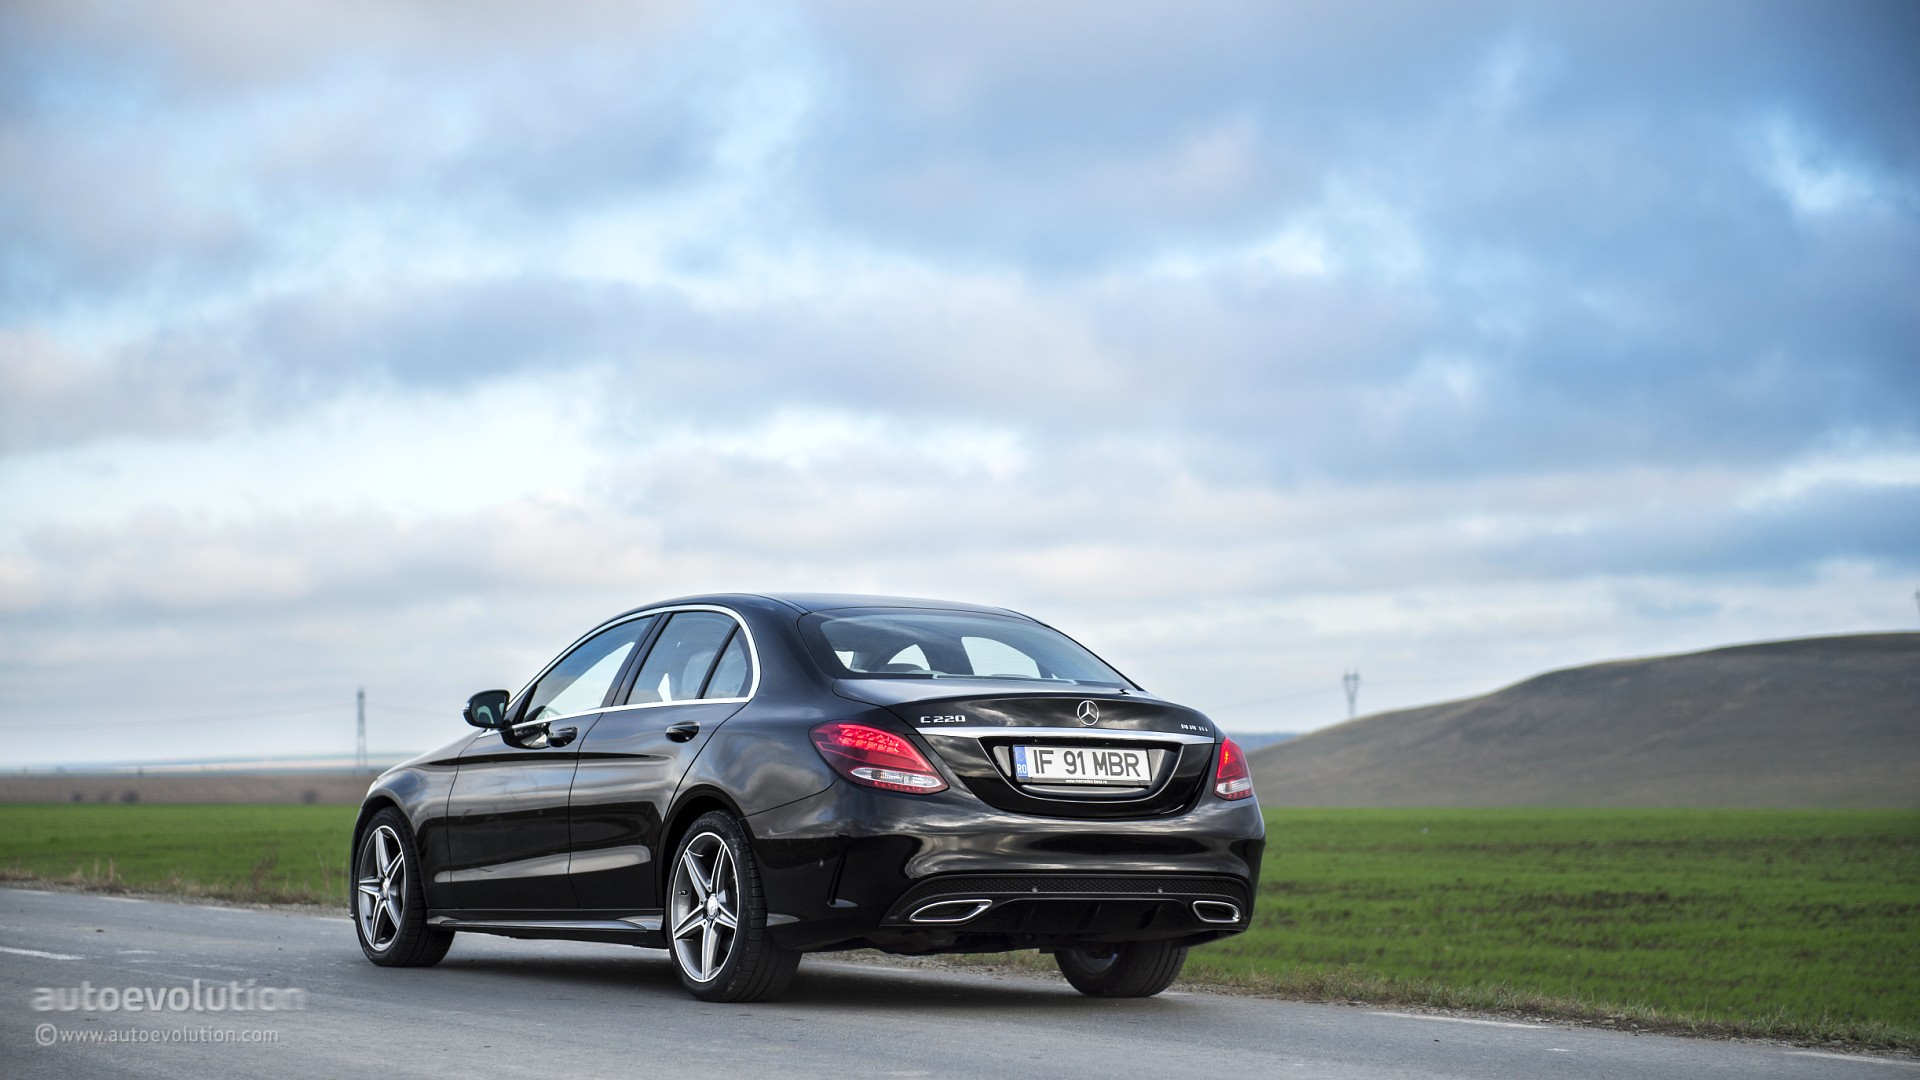 2015 mercedes benz c class review page 2 autoevolution for Mercedes benz c class review